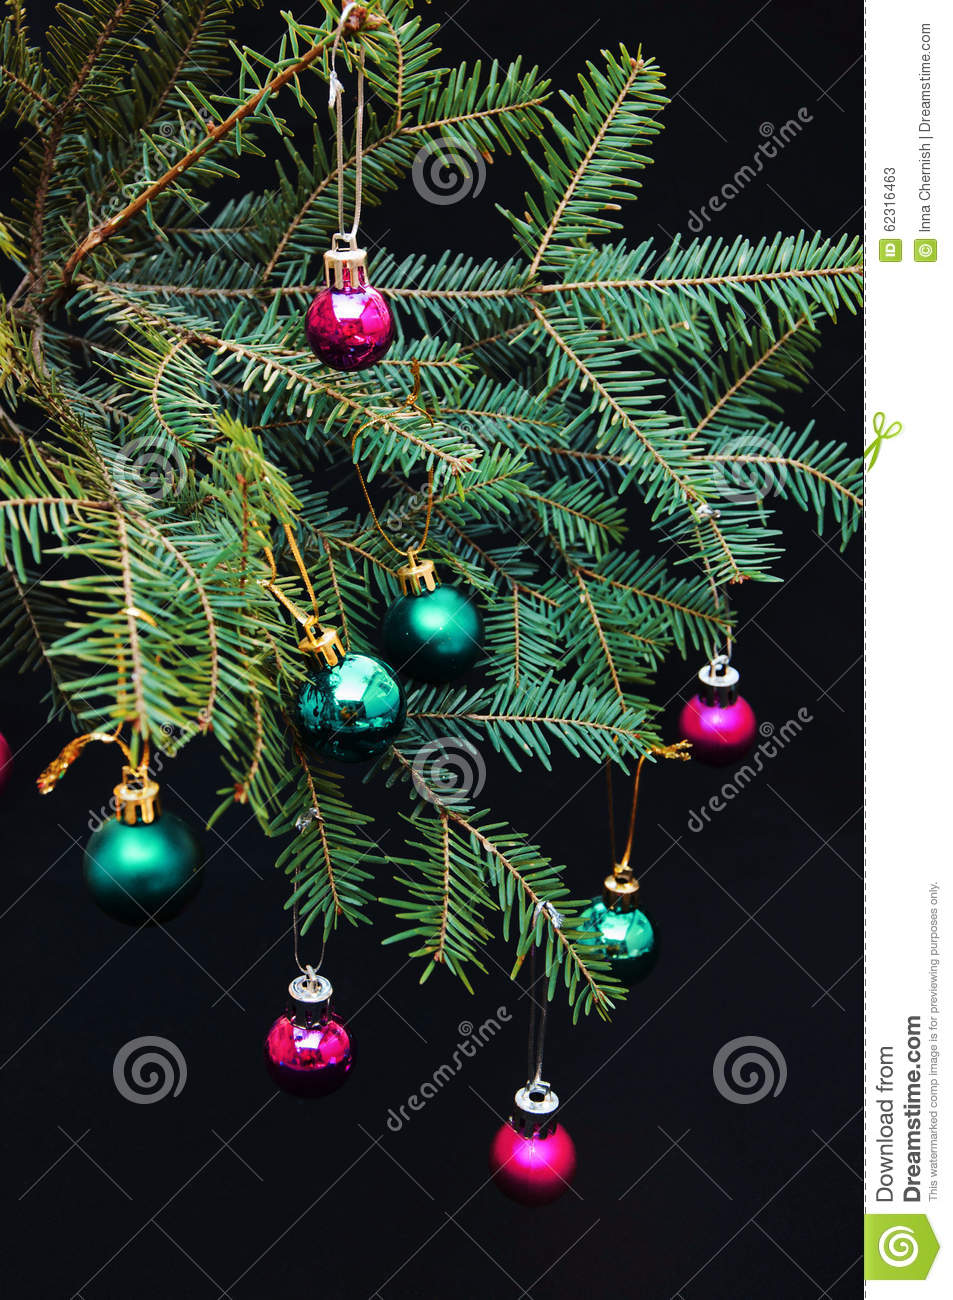 Purple And Black Christmas Tree Decorations : Christmas ornaments and pine branches on black background